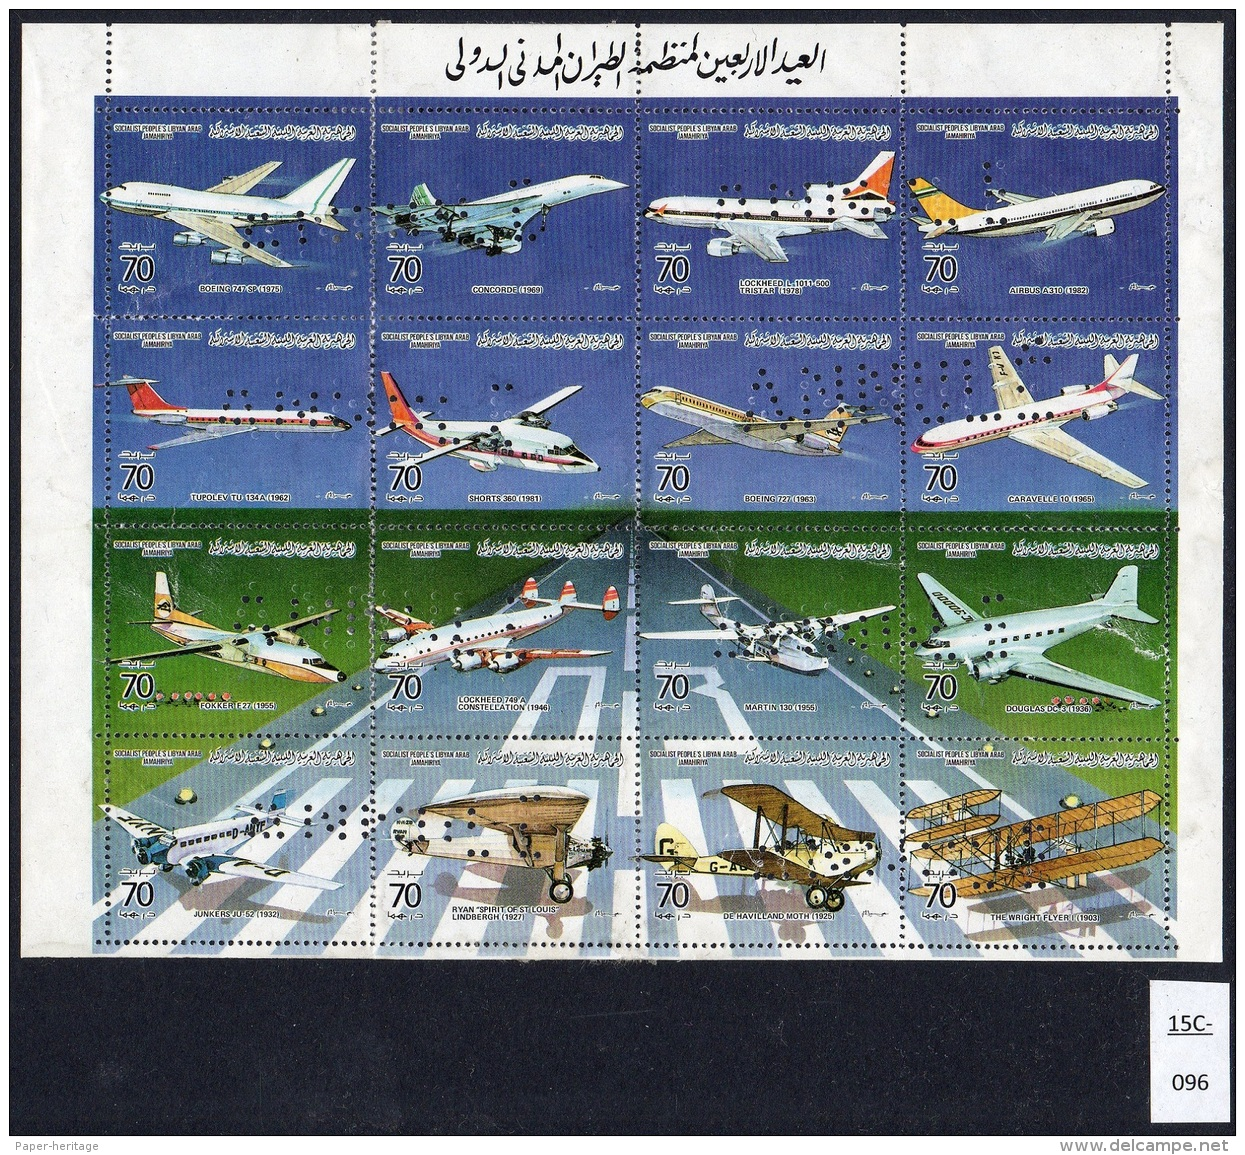 Libya 1984 Aircraft Sheetlet Perforated With Printers' Archive Punch - Poor Condition But Interesting. Concorde Li - Concorde